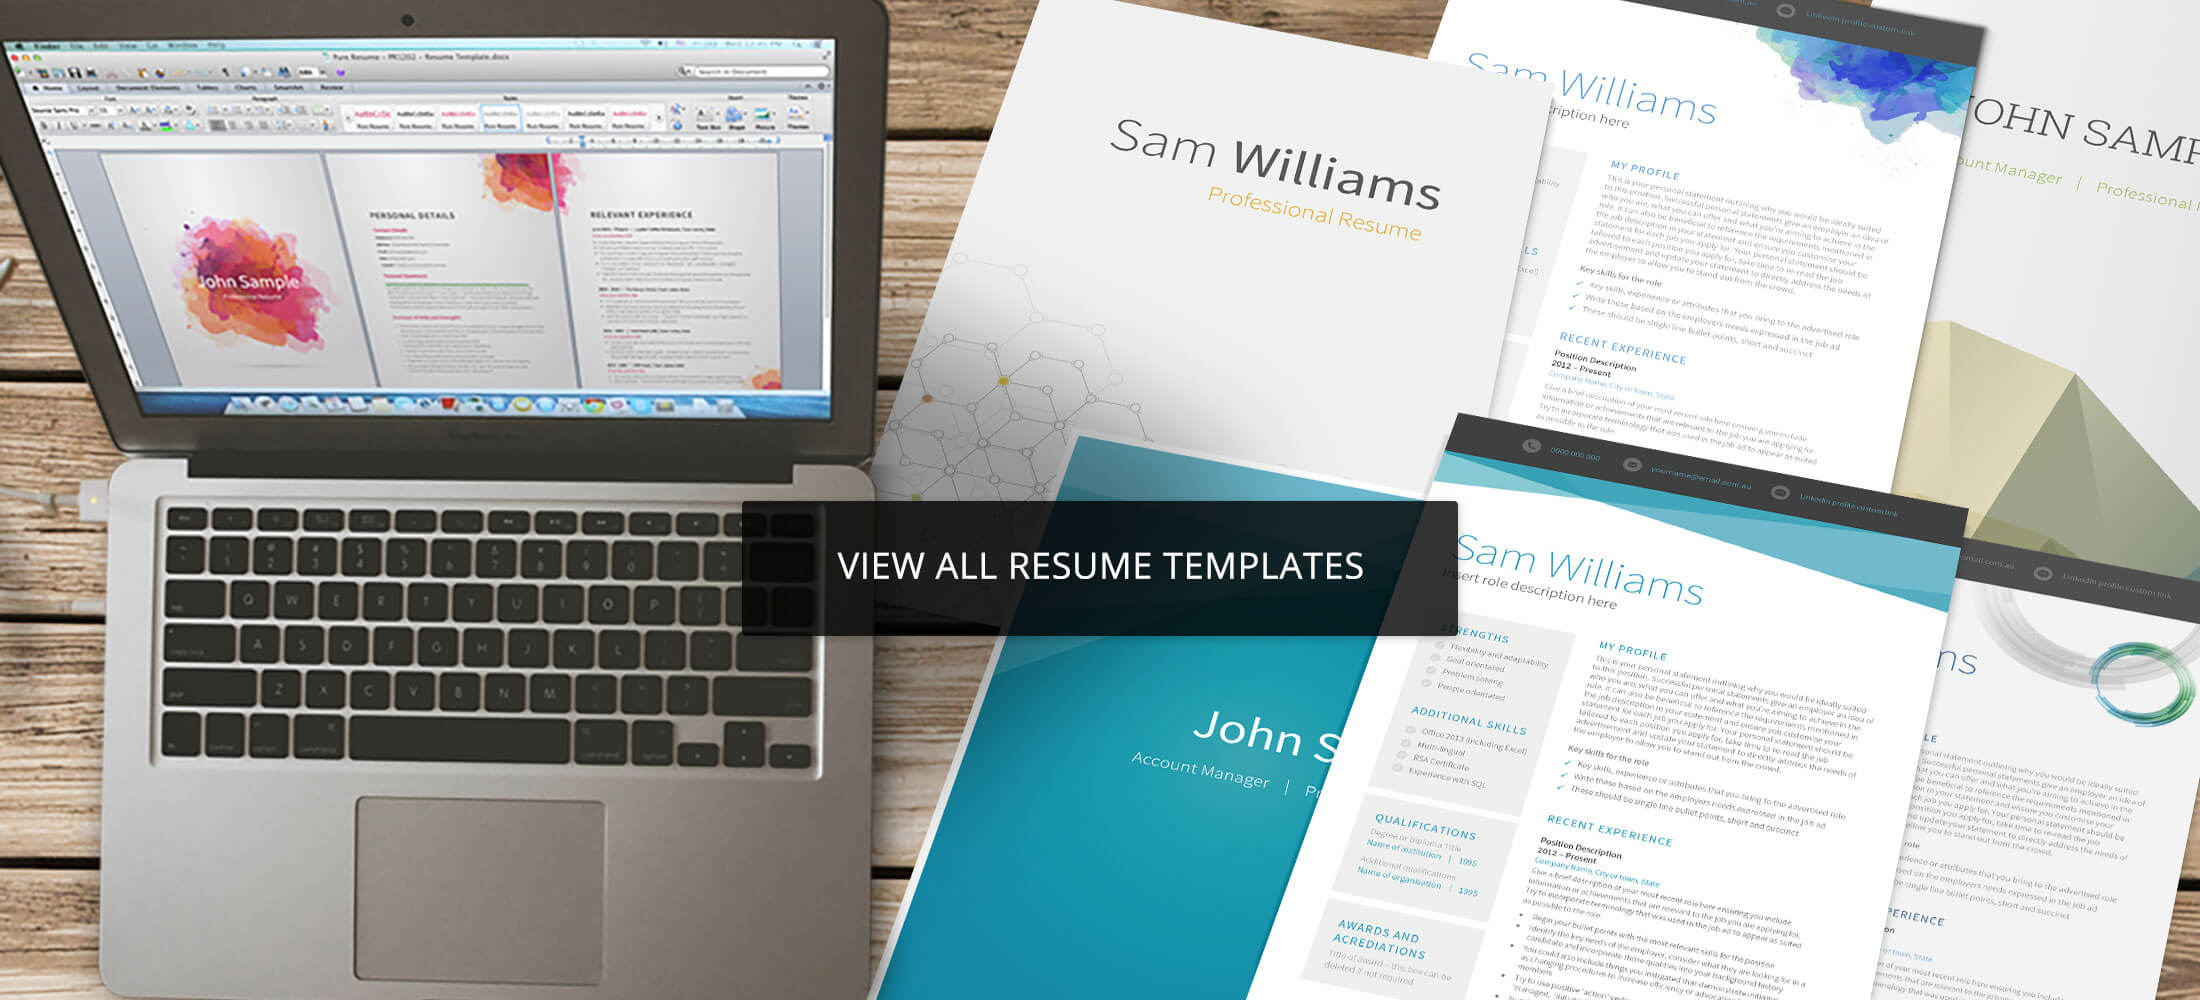 View-All-Resume-Templates-hires.jpg